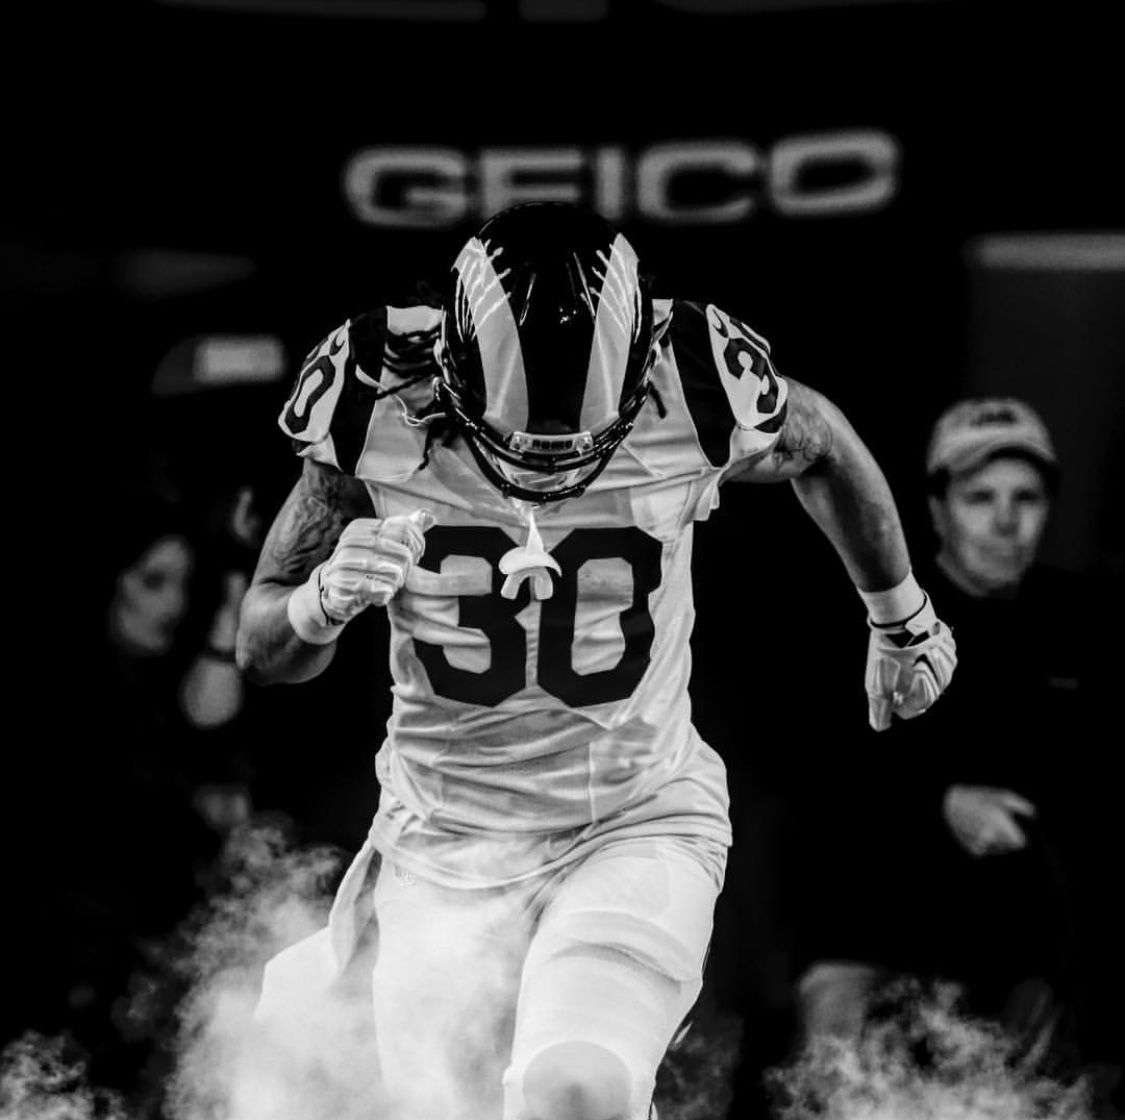 Pin By Ronnie Gallegos On Los Angeles Rams With Images Todd Gurley Los Angeles Rams La Rams